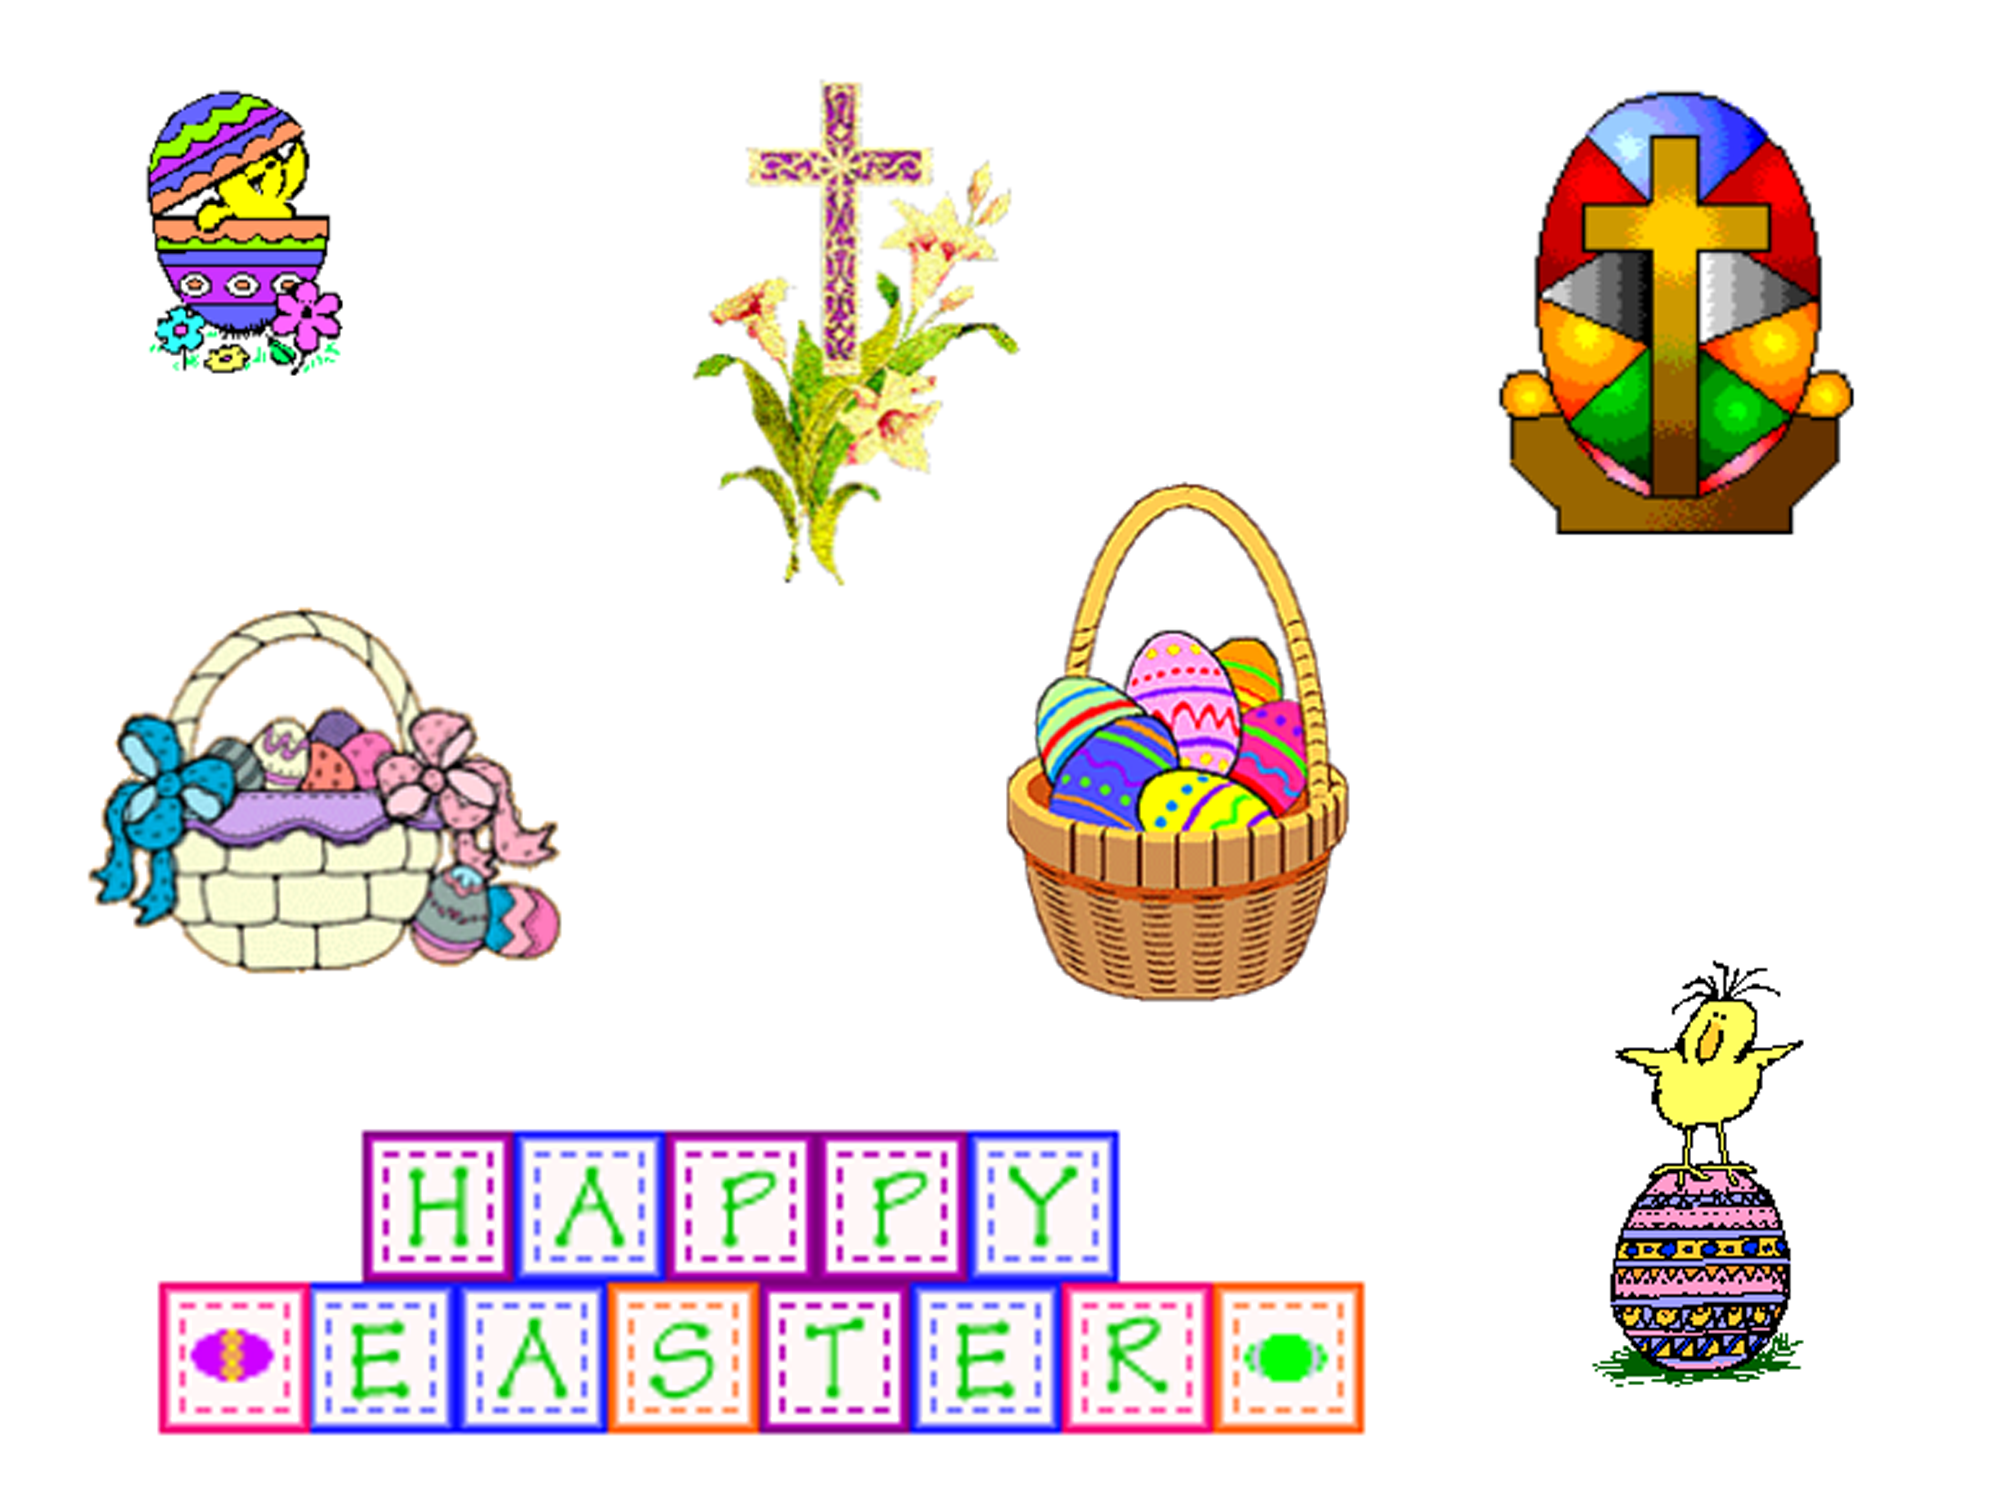 Free easter clipart images. A huge list of